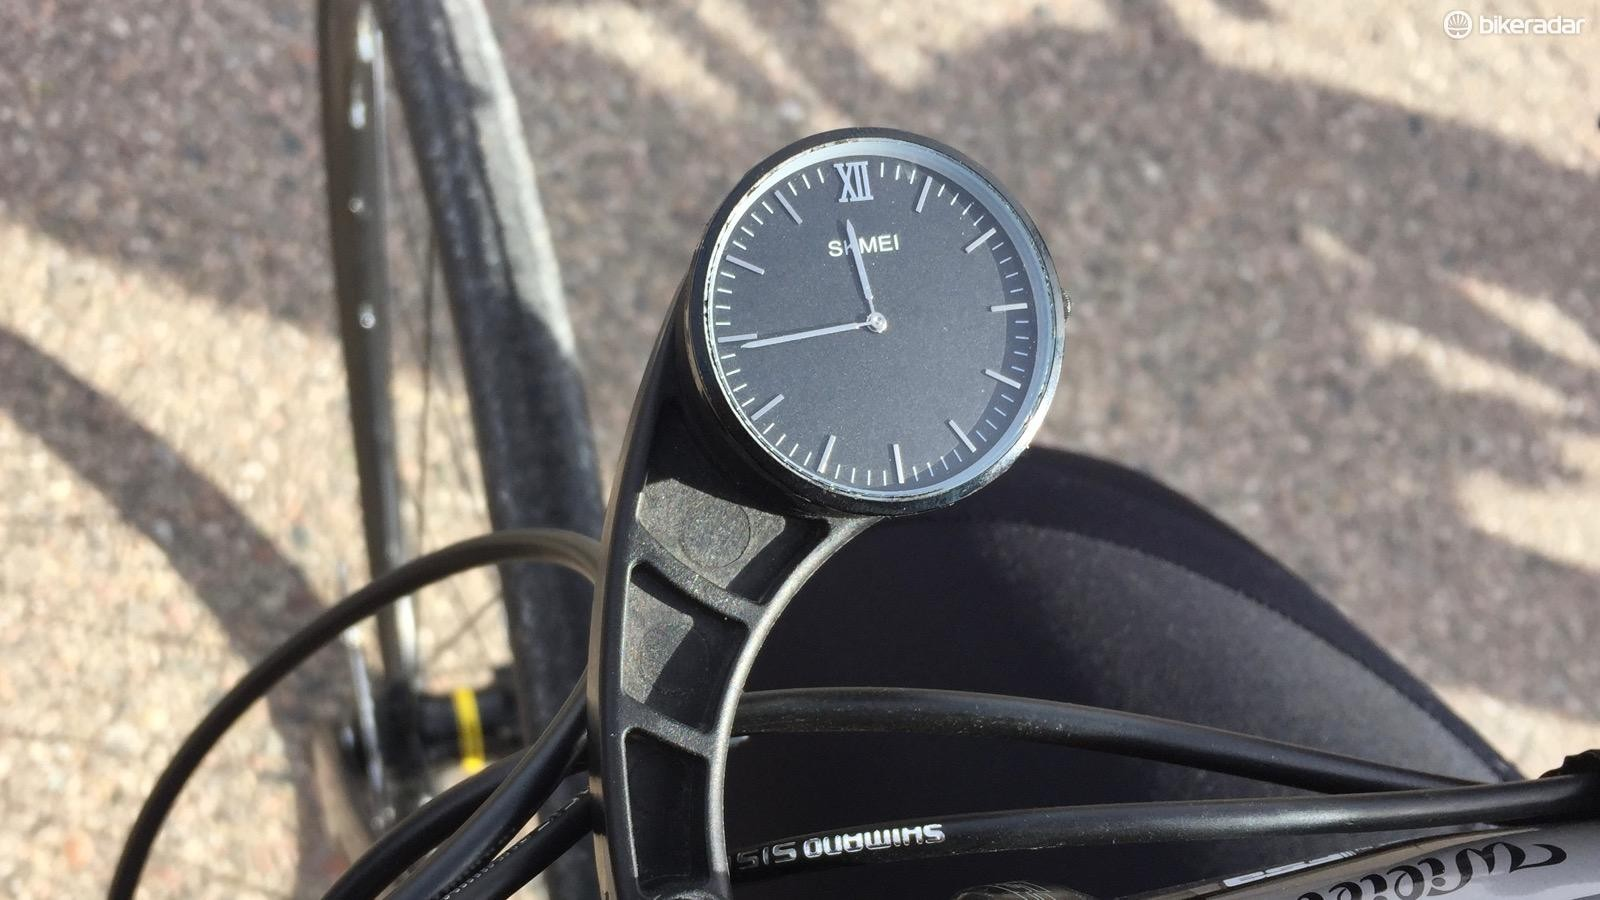 A friend made this analog ride computer for $18 ($4 watch plus a $14 Garmin tab repair kit) — and he rides with his Wahoo Elemnt in his jersey to collect data